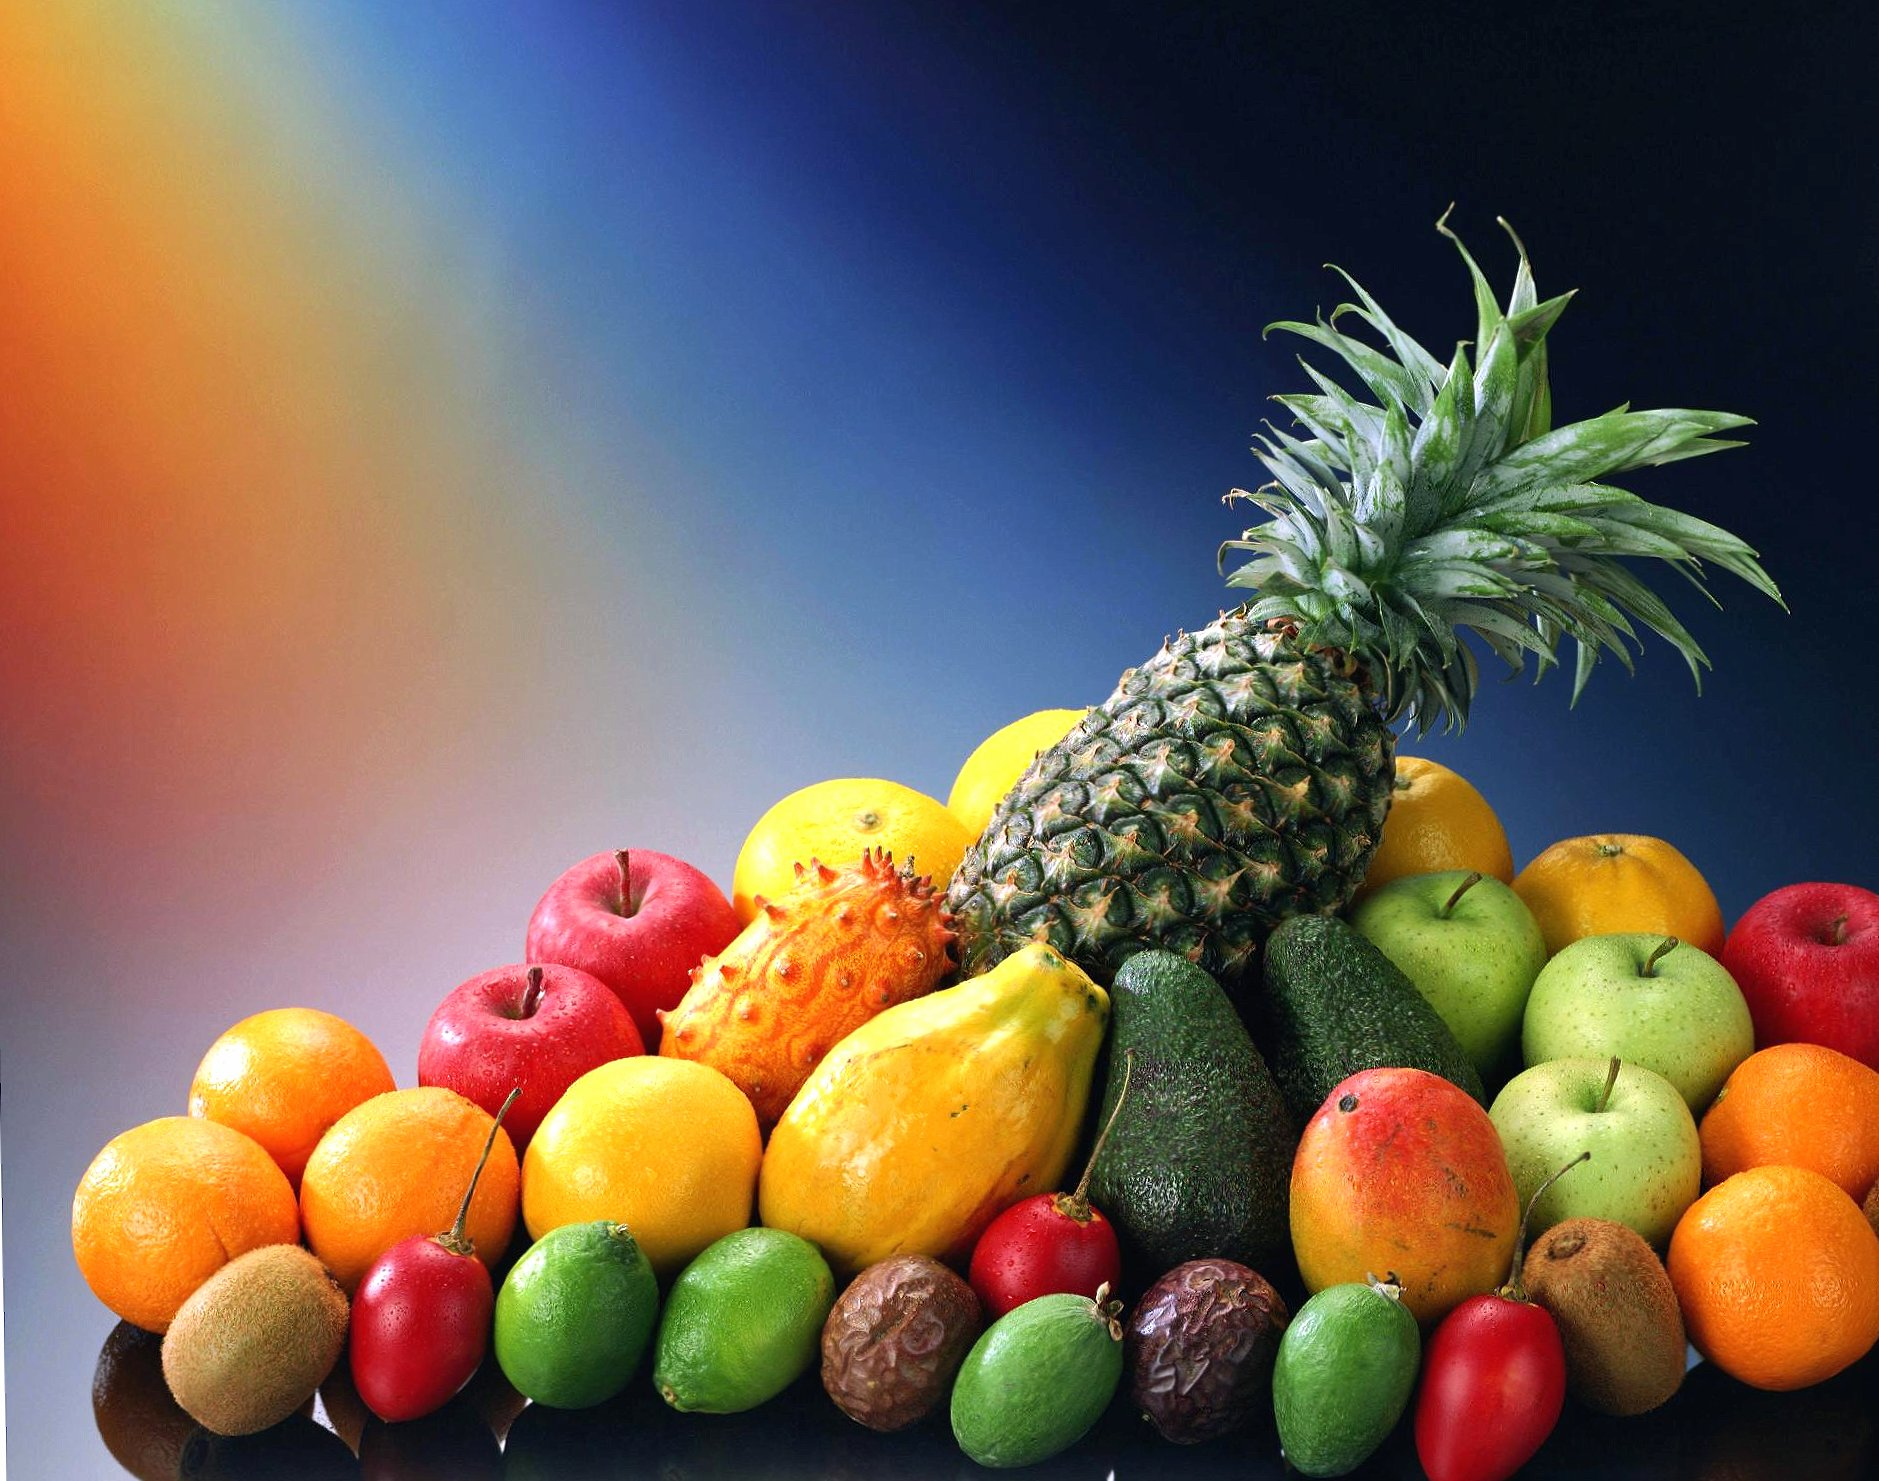 Fruit still life wallpapers HD quality